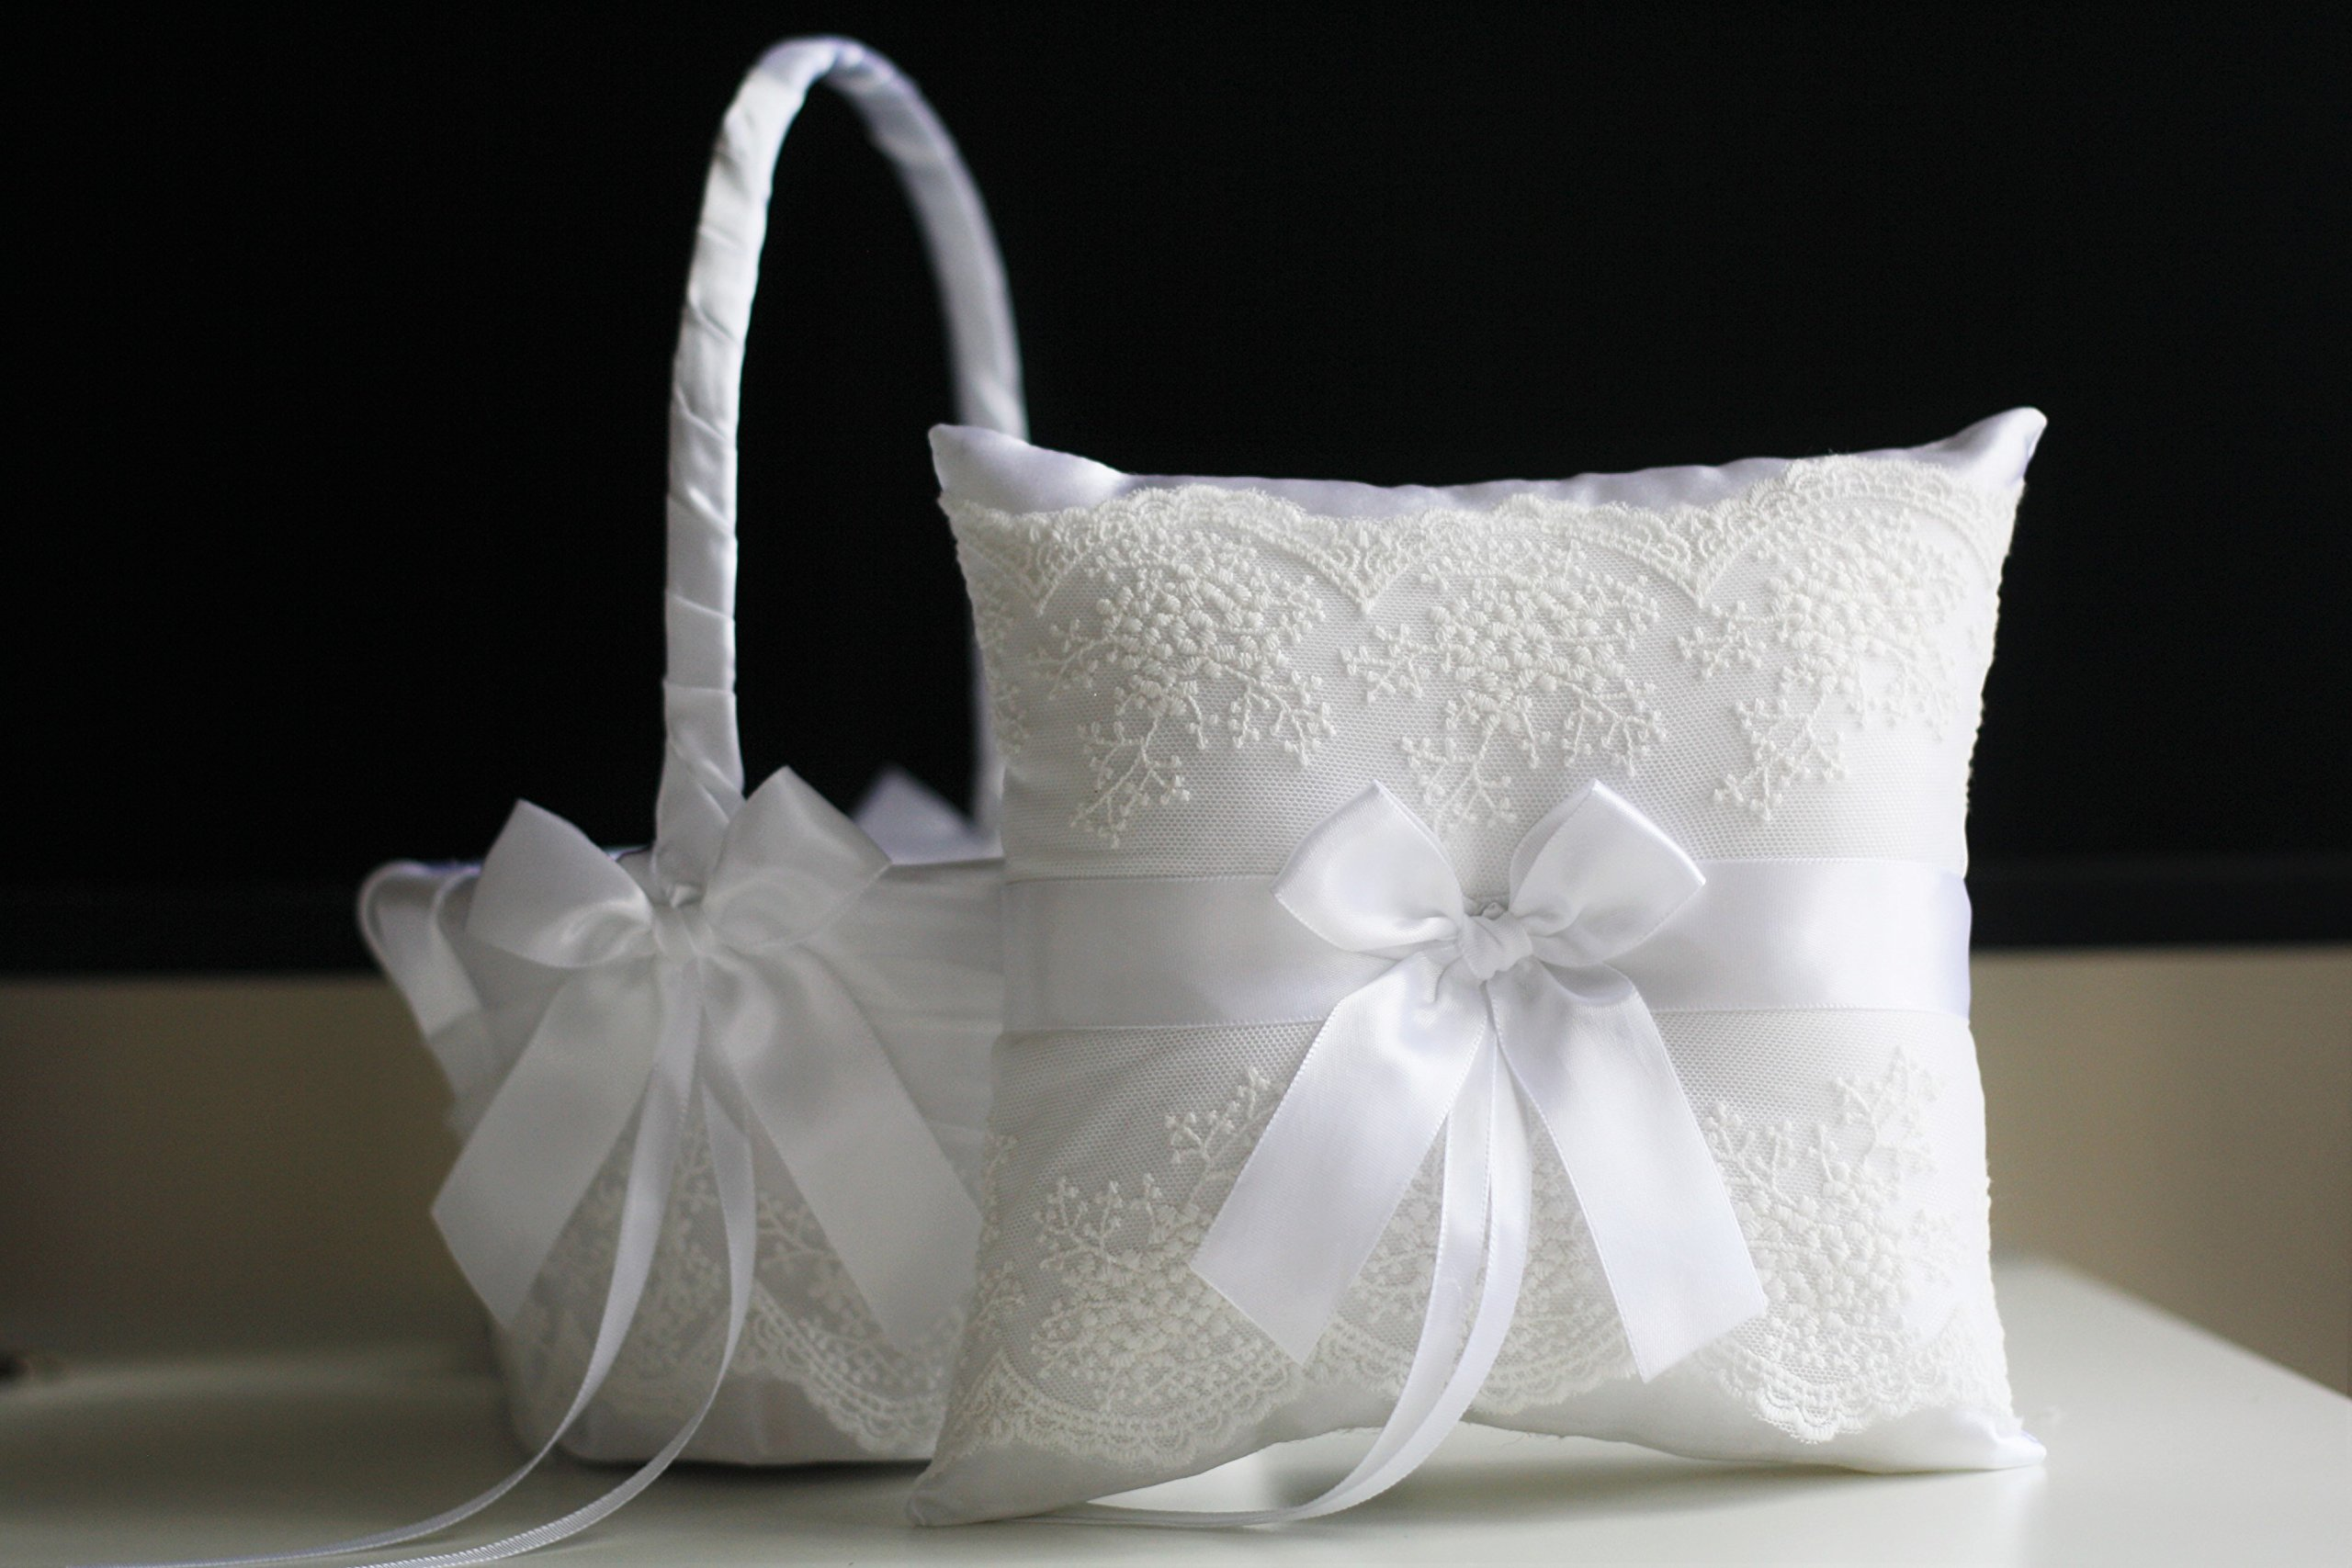 Alex Emotions White Flower Girl Basket & Ring Bearer Pillow Set Lace Collection | White Ring Holder | White Wedding Basket by Alex Emotions